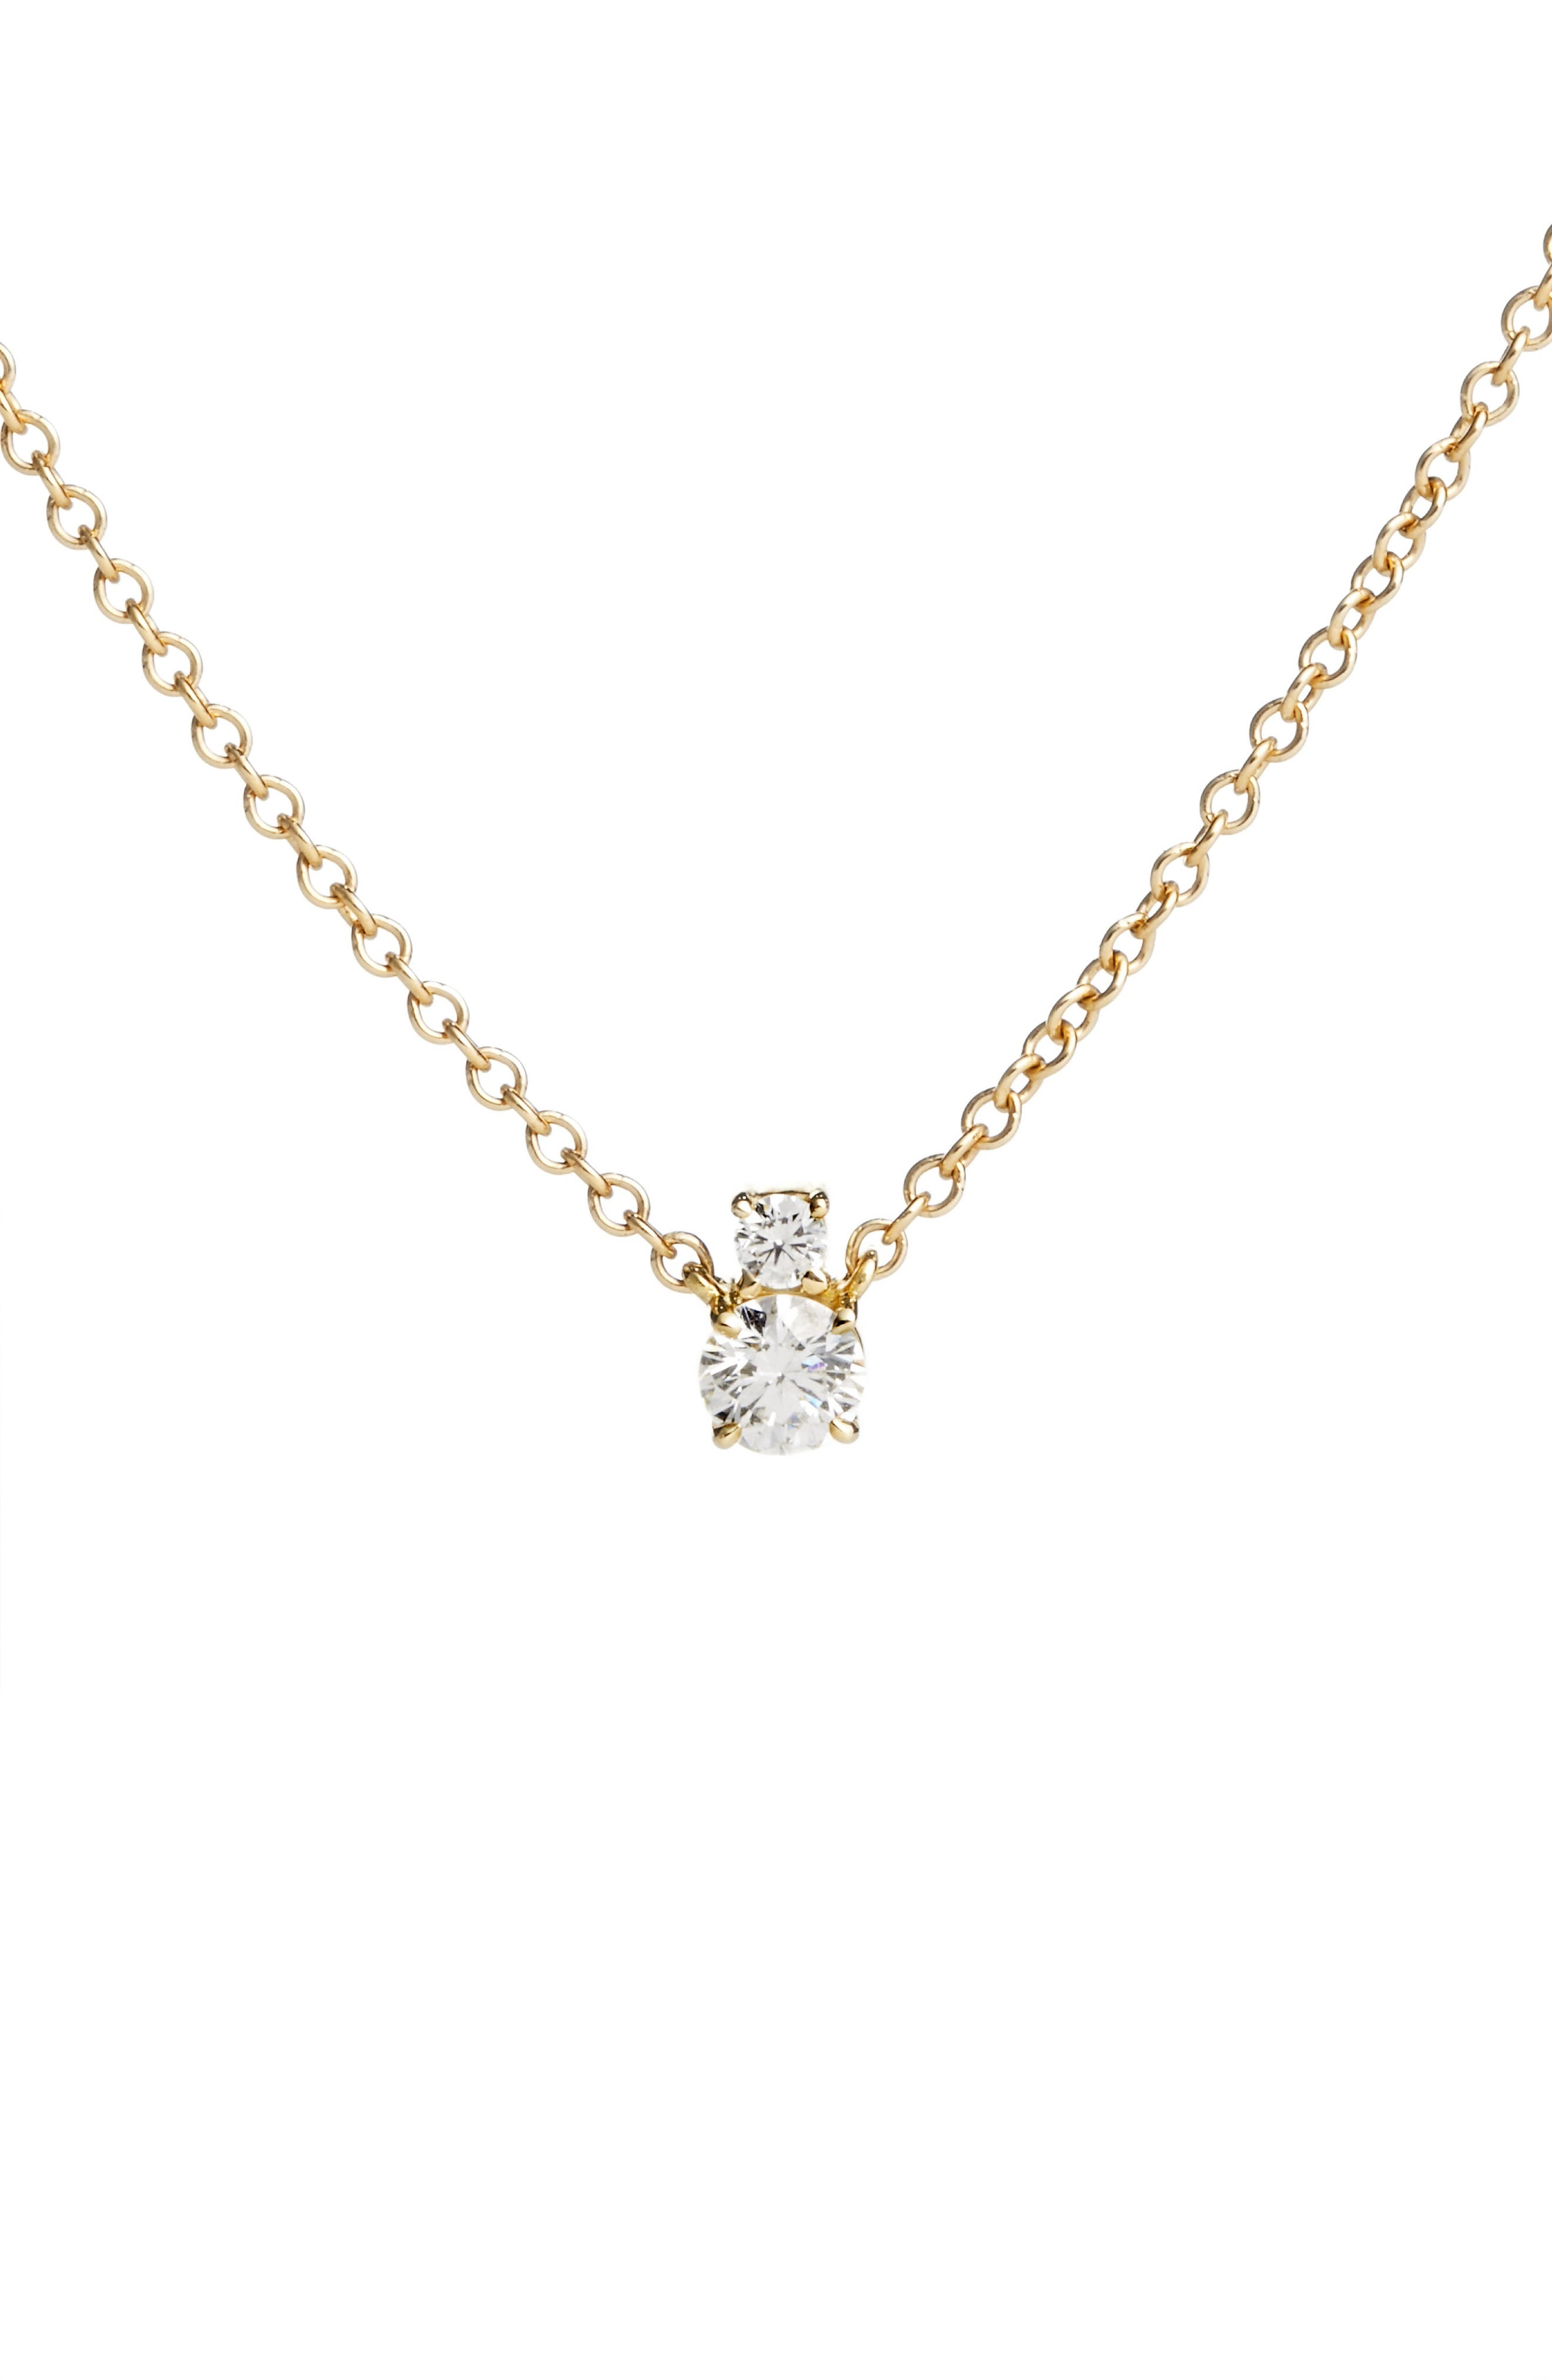 Main Image - Jemma Wynne Prive Luxe 18K Gold & Diamond Solitaire Necklace